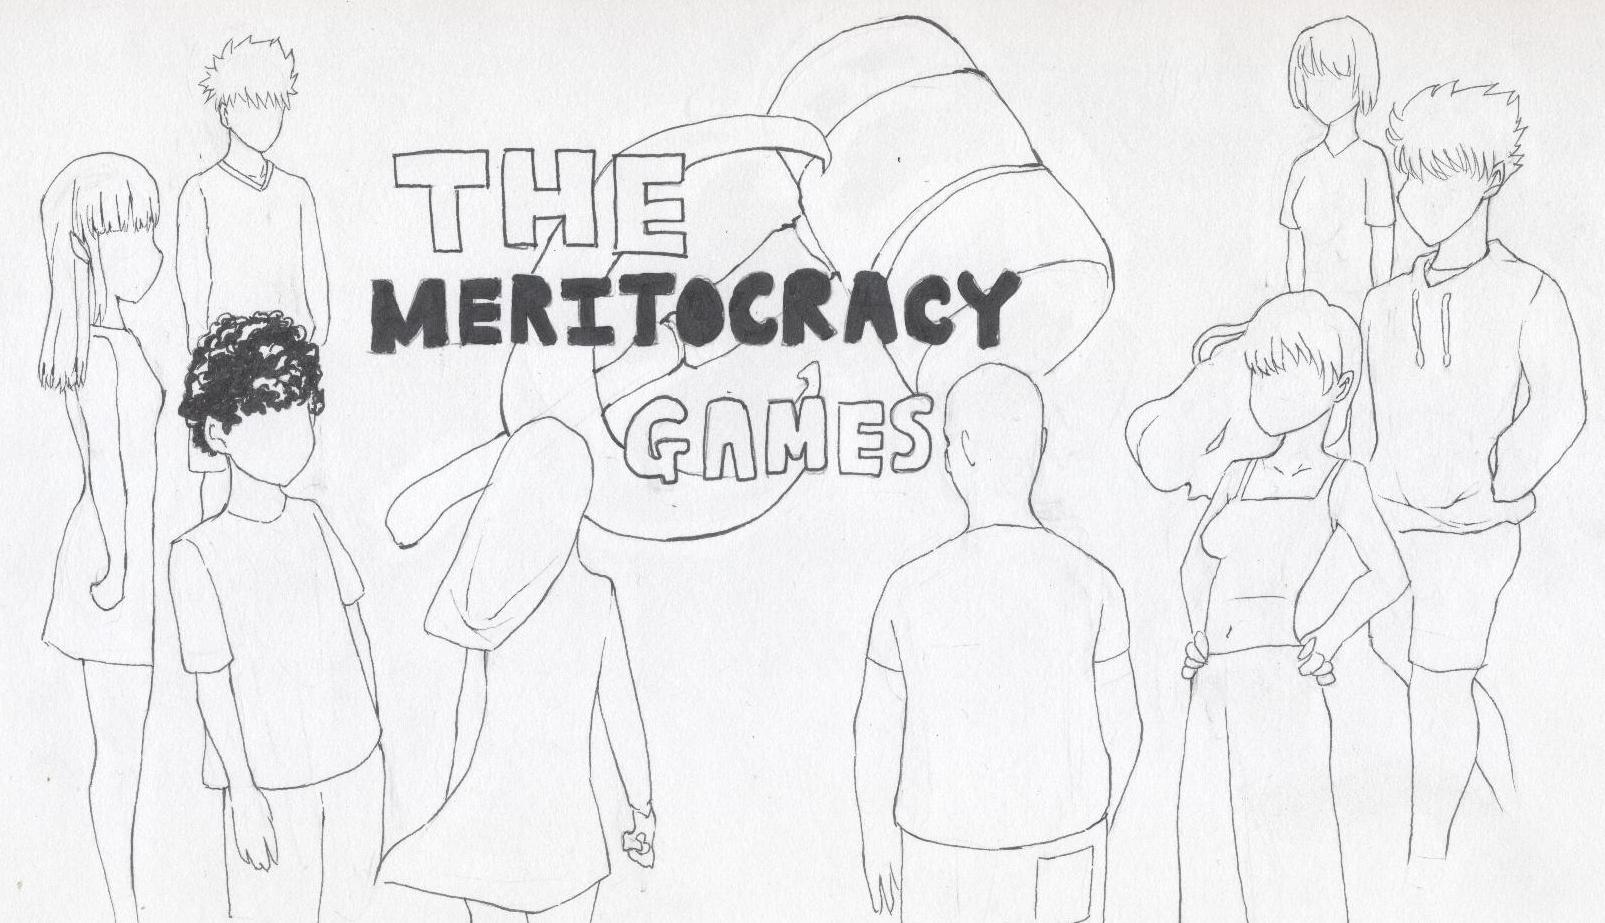 Meritocracy - Illustration by Roger Ko